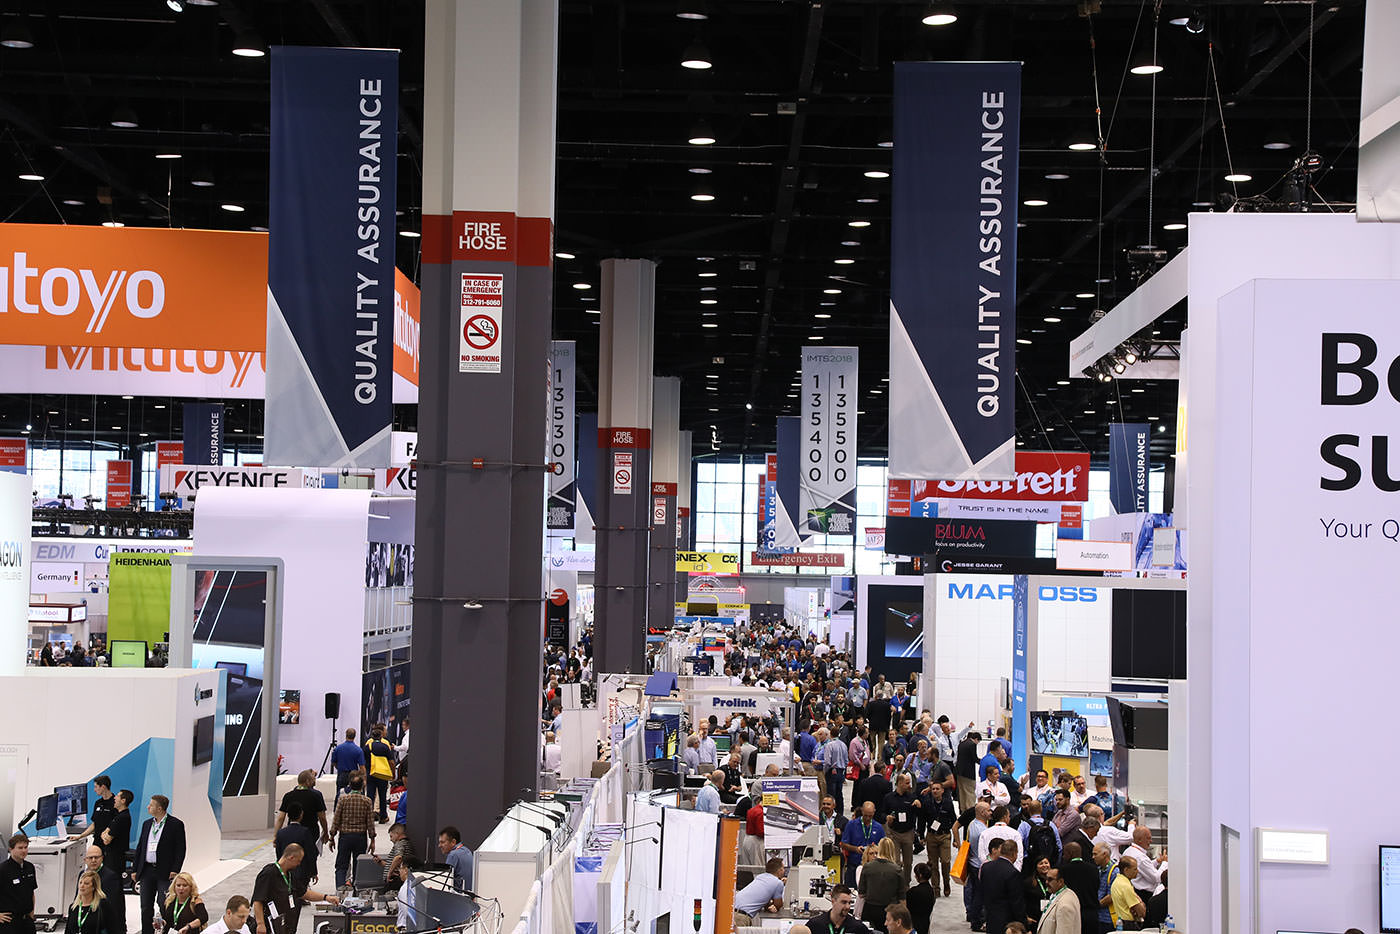 IMTS 2018 drew a record registration of 129,415 people and featured 1,424,232 sq. ft. of exhibit space representing 2,123 booths and 2,563 exhibiting companies.